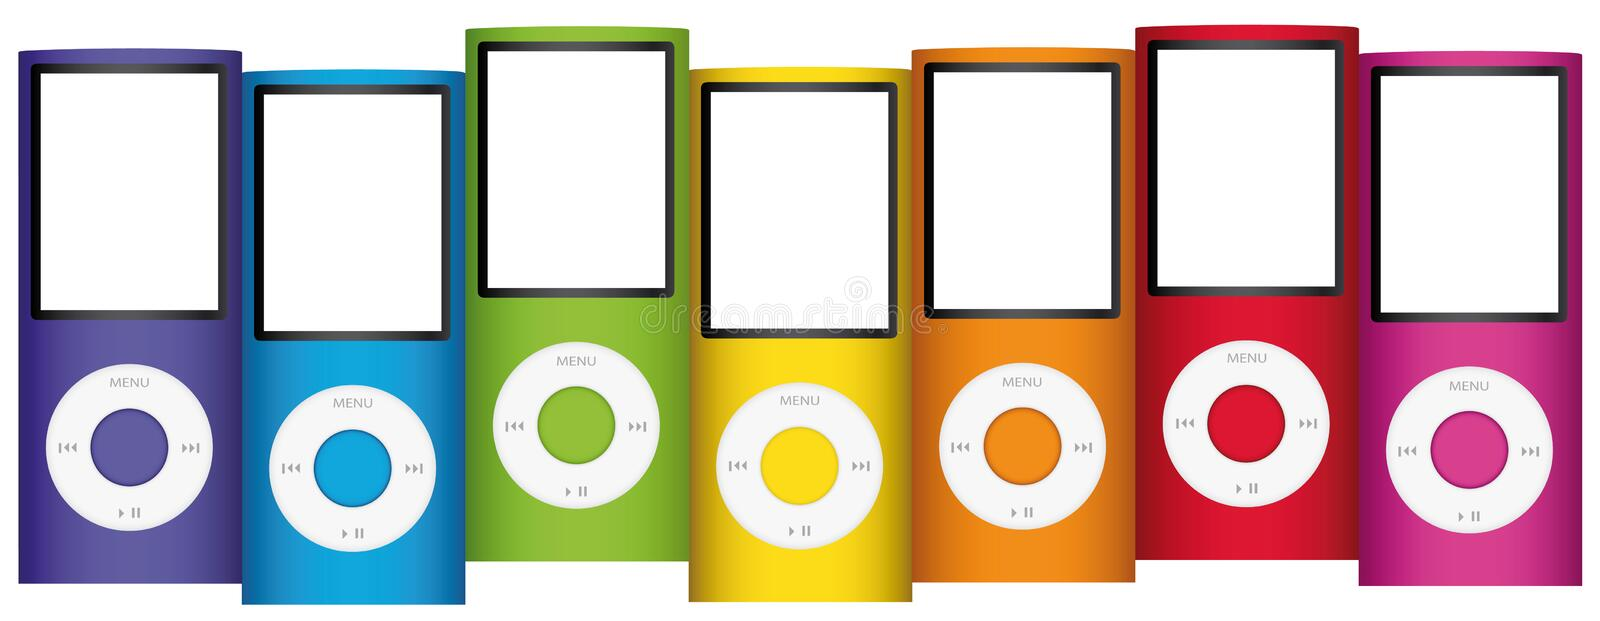 New Apple IPod Nano Editorial Image